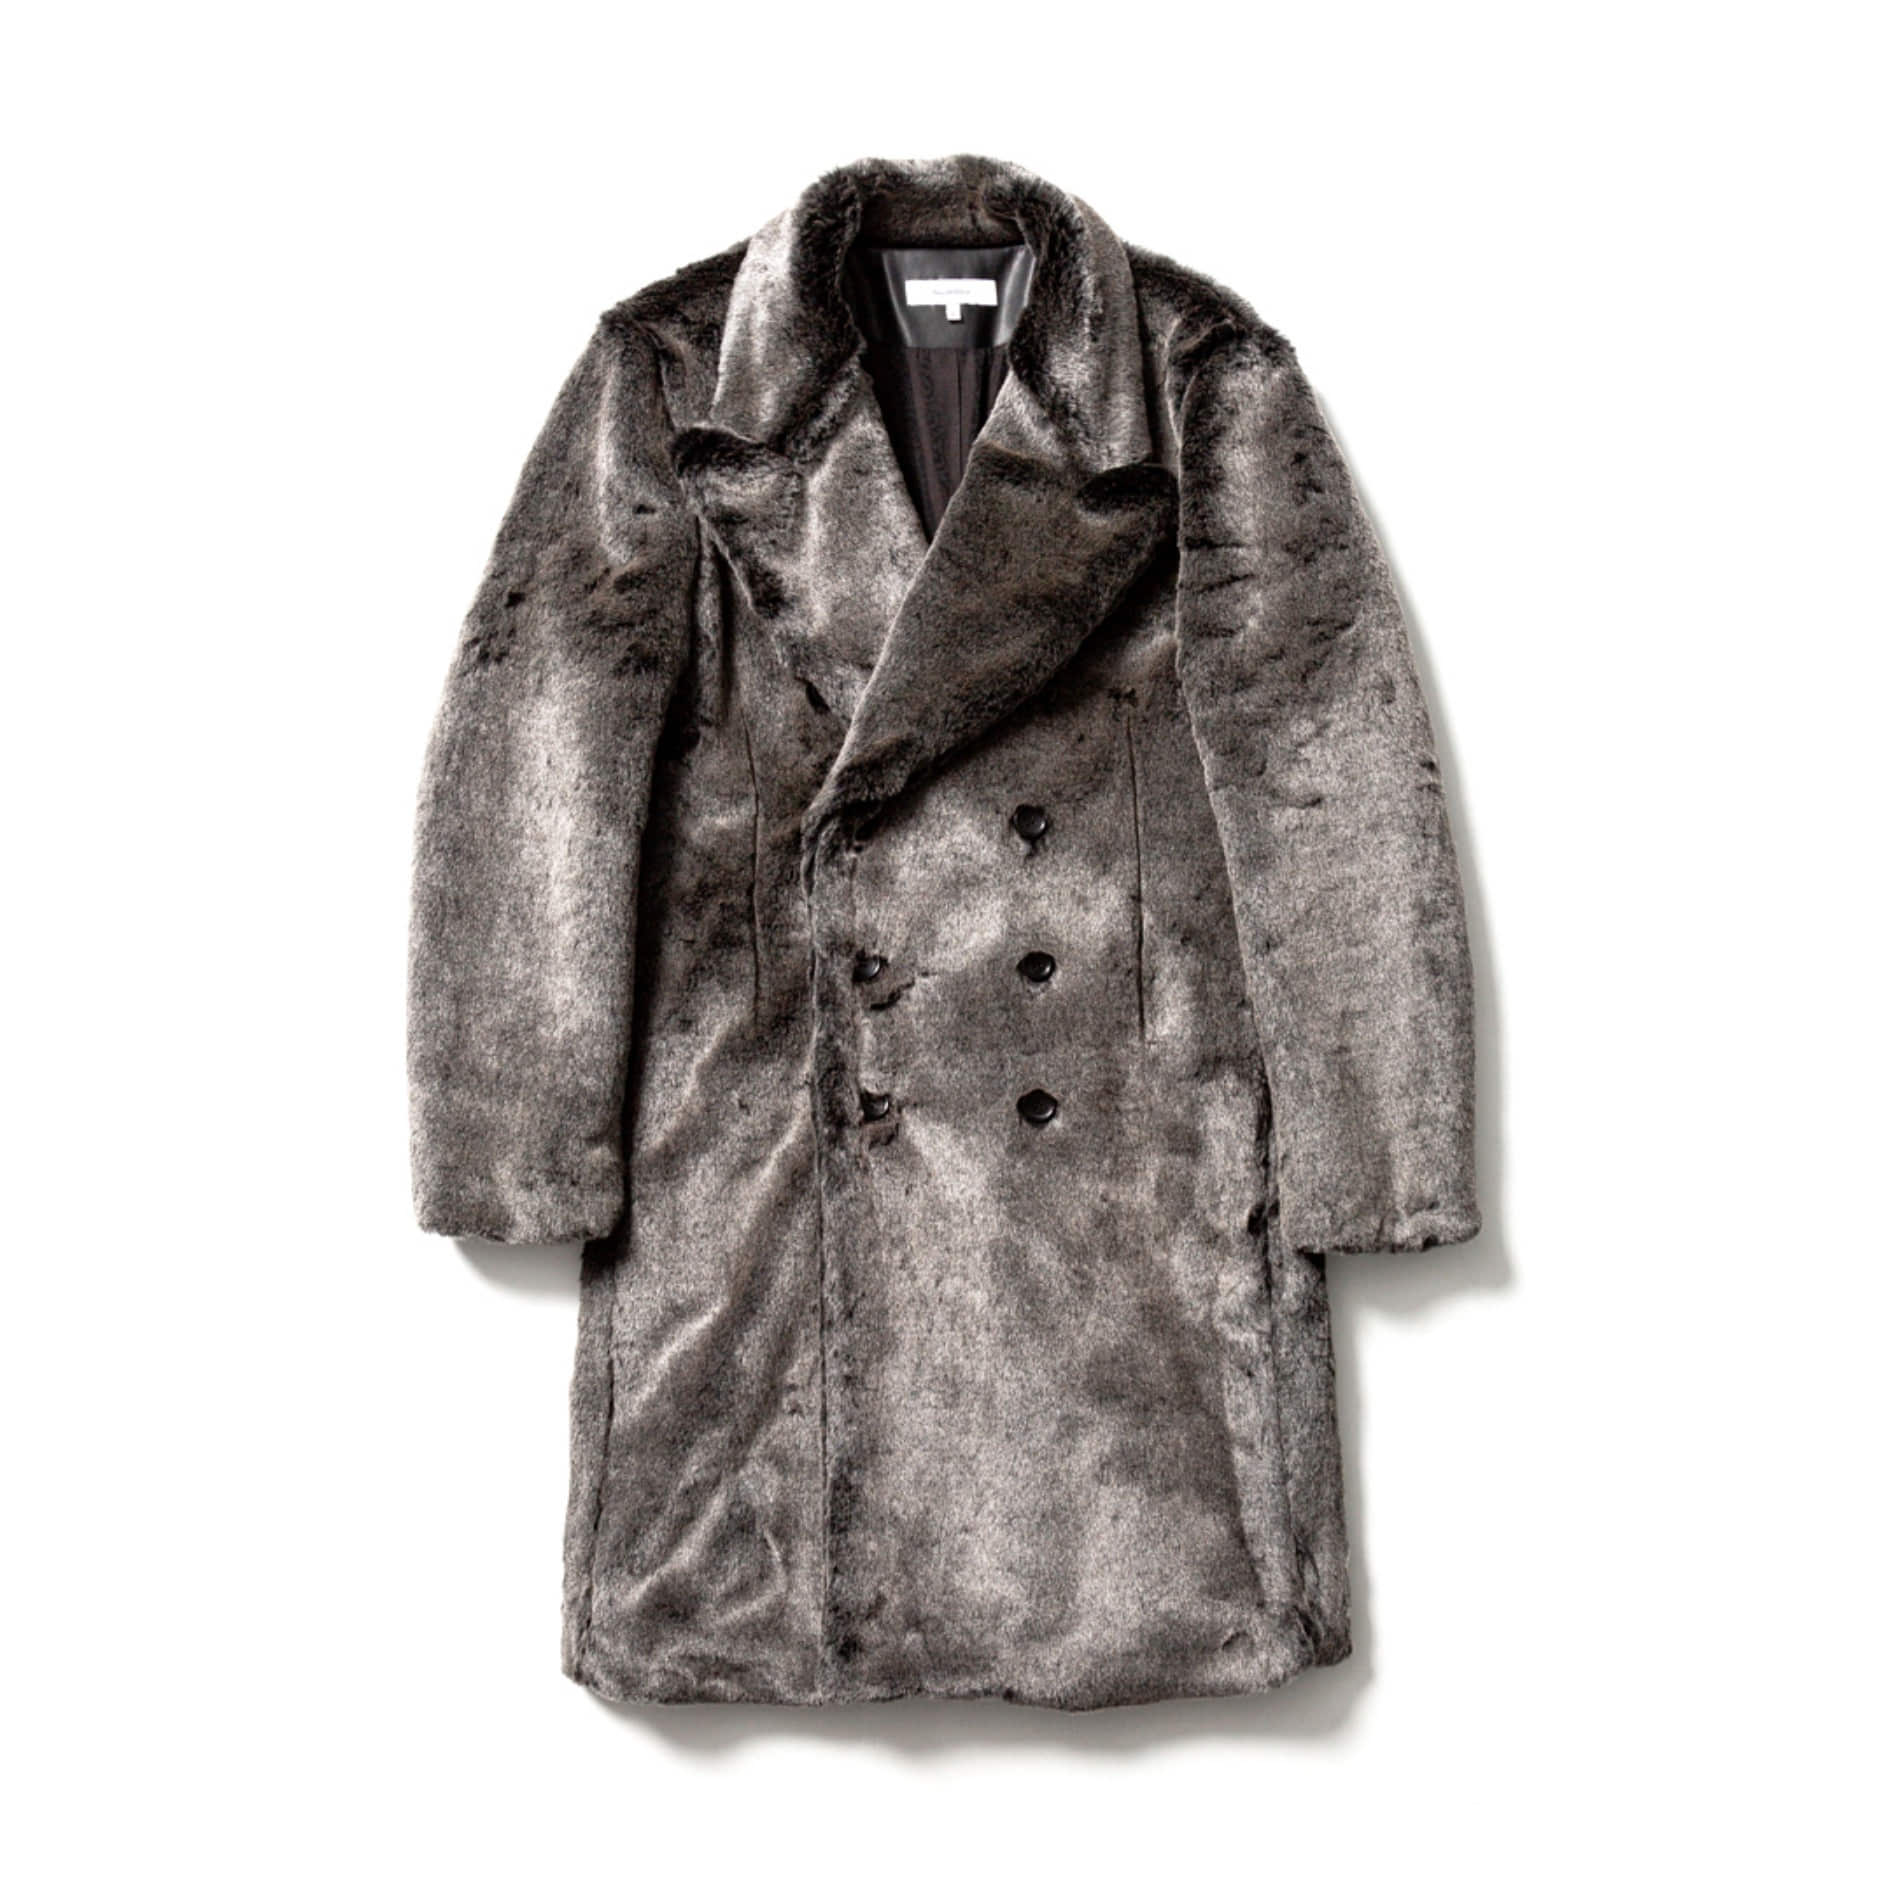 AW20 SASQUATCHFABRIX FAKE FUR COAT SILVER